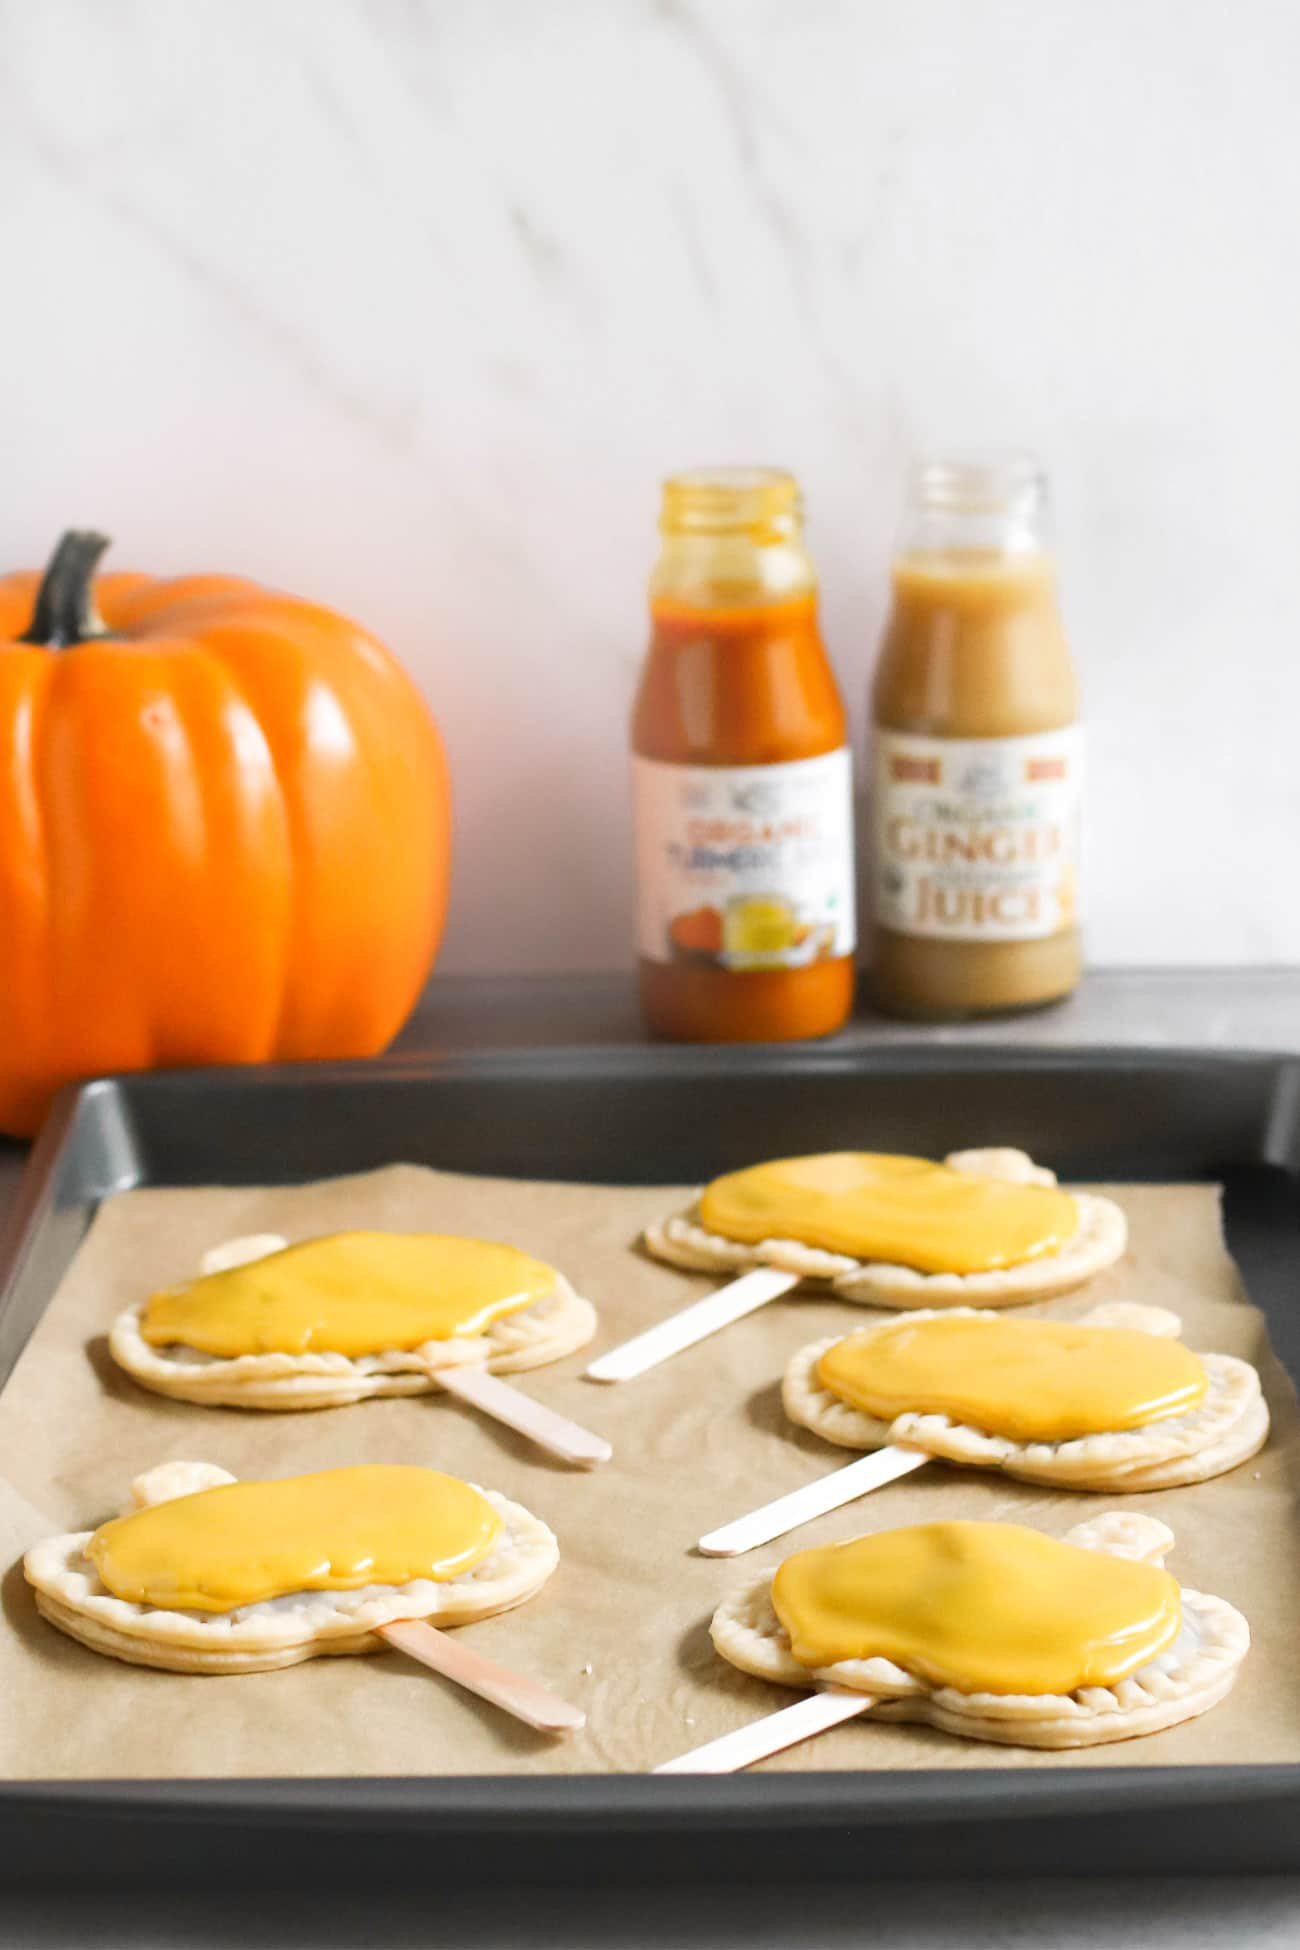 Pumpkin Pie Pops -- where Pumpkin Pie meets limited edition Pumpkin Pie Pop Tarts meets secretly good-for-you deliciousness! They're rich and sweet to satisfy your sweet tooth, and they're secretly vegan, dairy free, and lowsugar too! What can be better than homemade pumpkin pie filling all wrapped up in a flavorful pie crust? Everything about these screams Fall, Halloween, cool weather, fuzzy sweaters, and good feels. These are a guaranteed crowdpleaser, and definitely a dessert to impress!